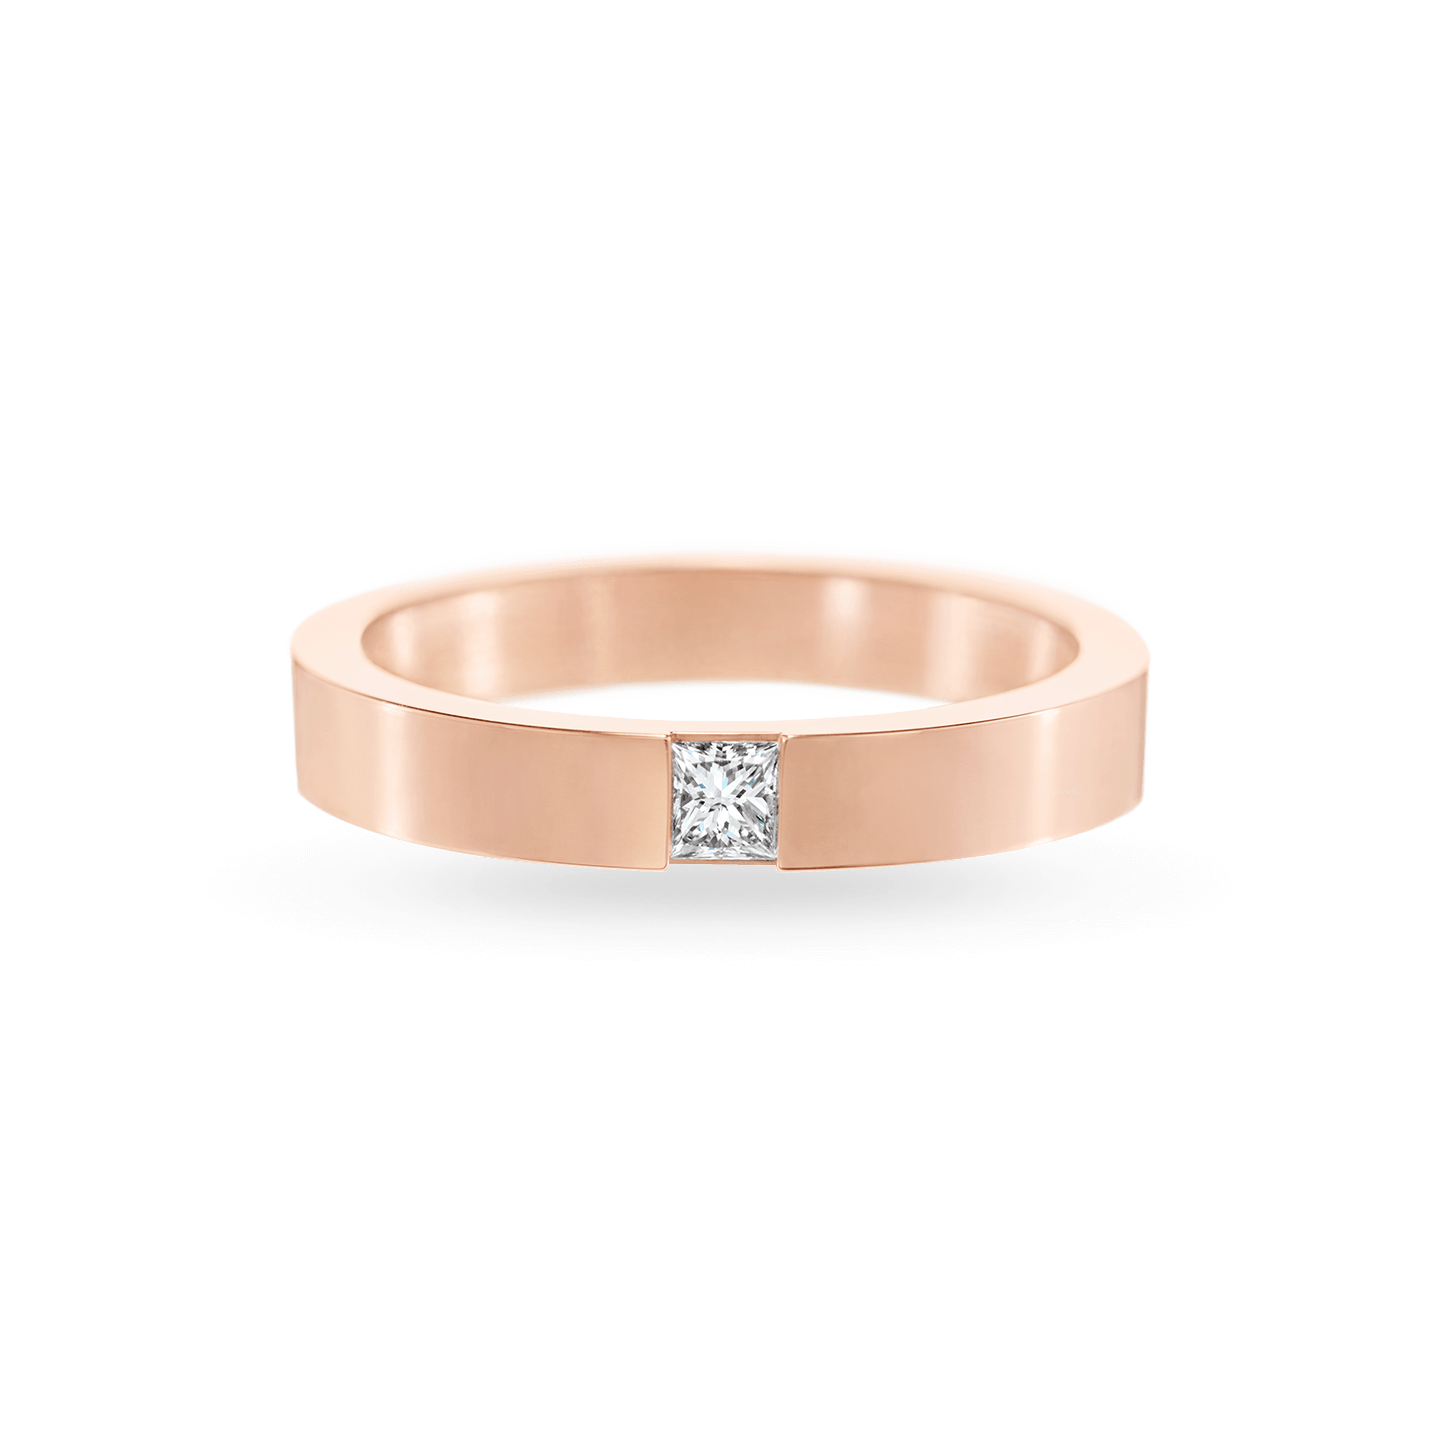 Princess-Cut Single Diamond Wedding Band in Rose Gold, Product Image 1